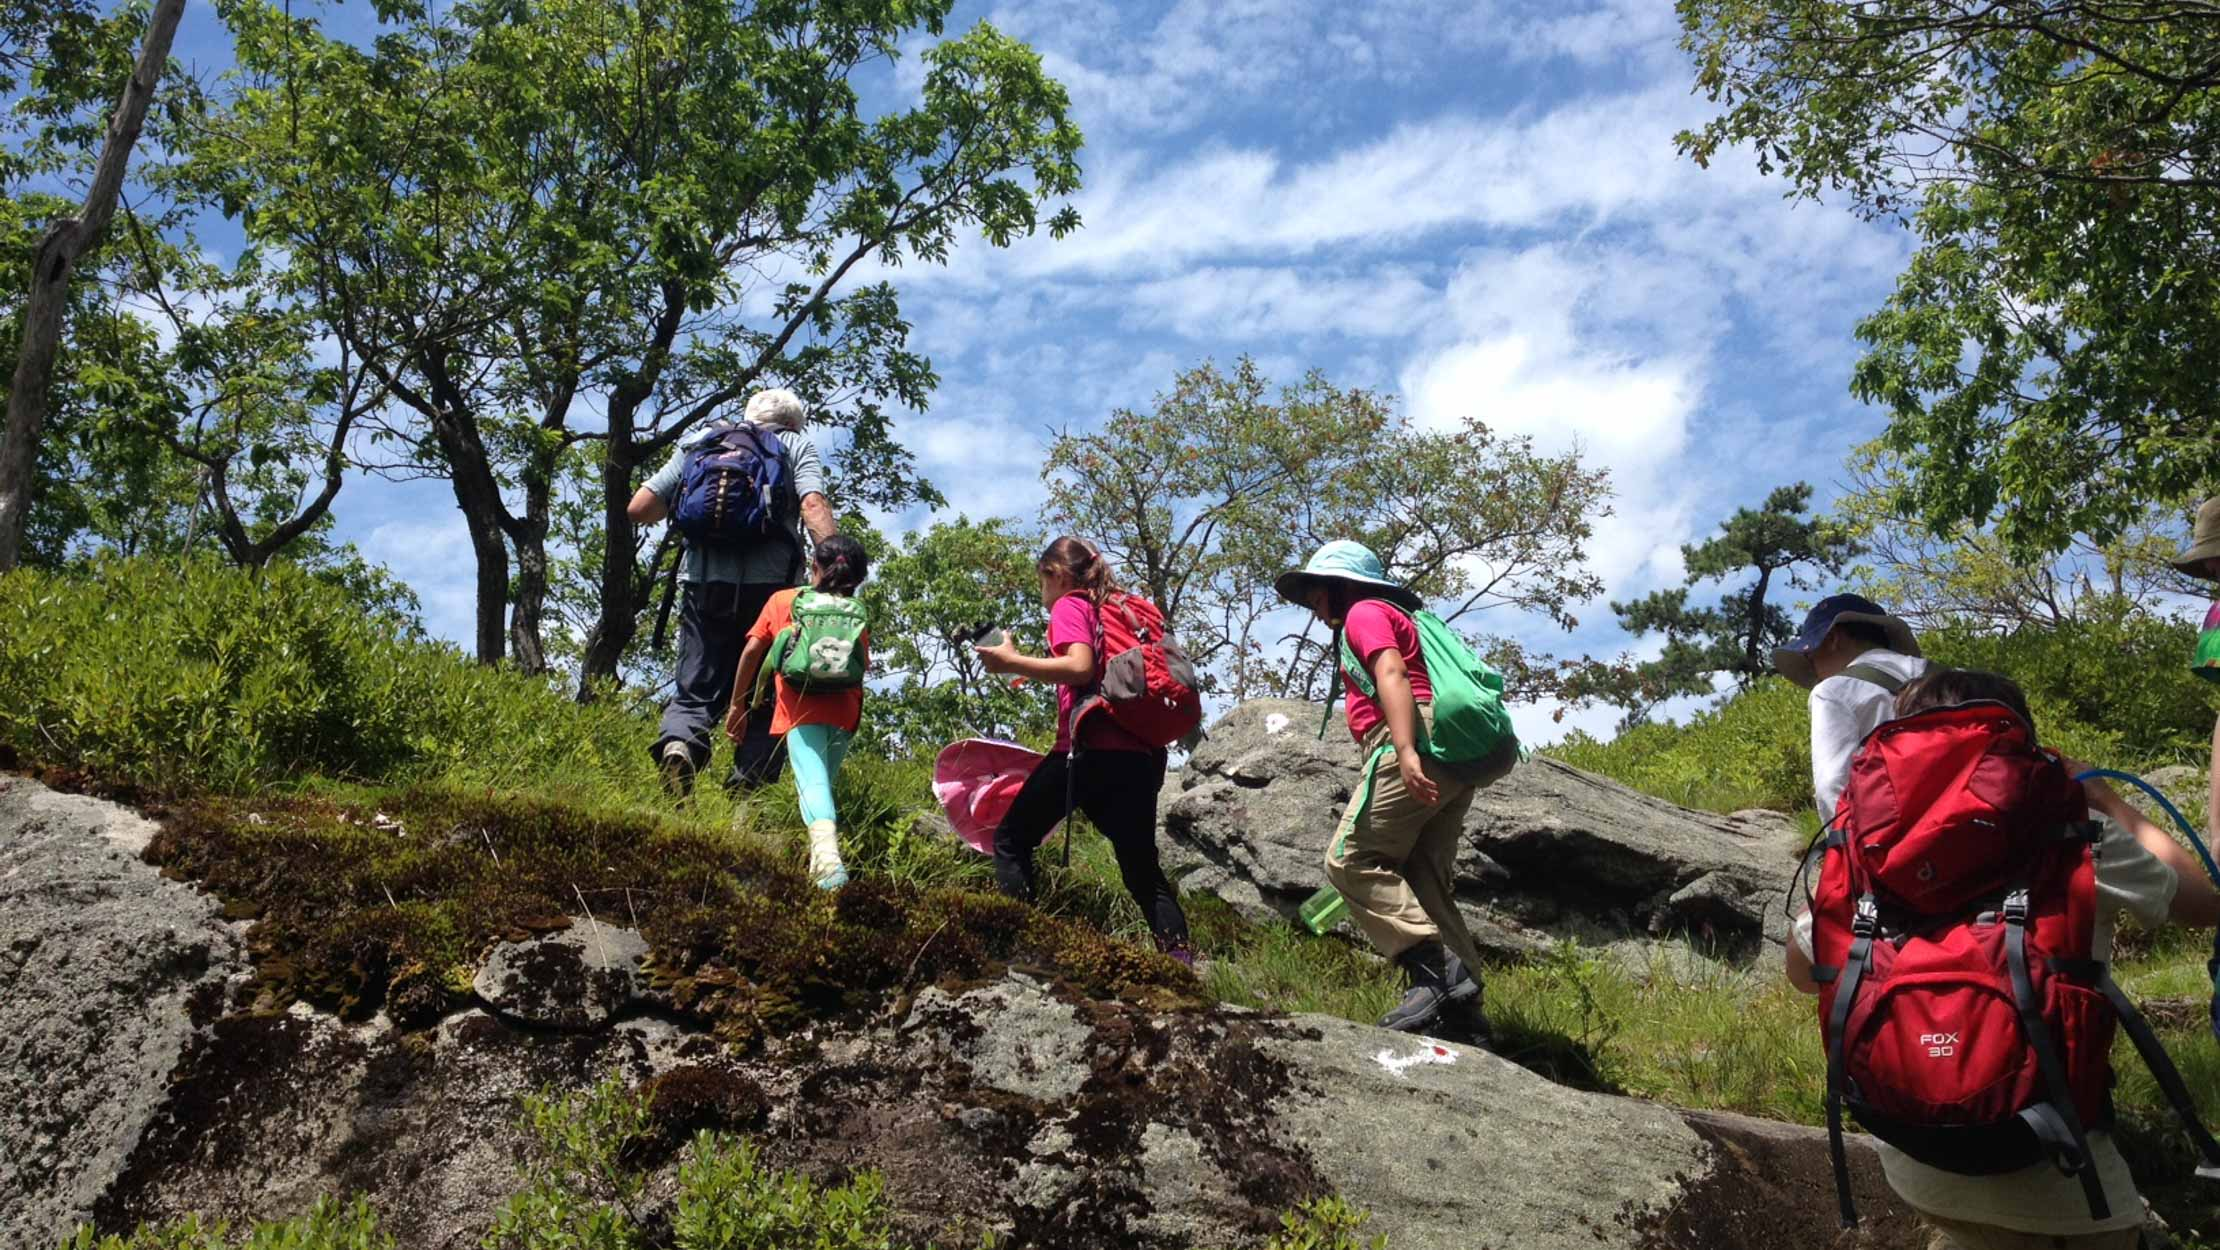 Group of campers backpacking up a hill